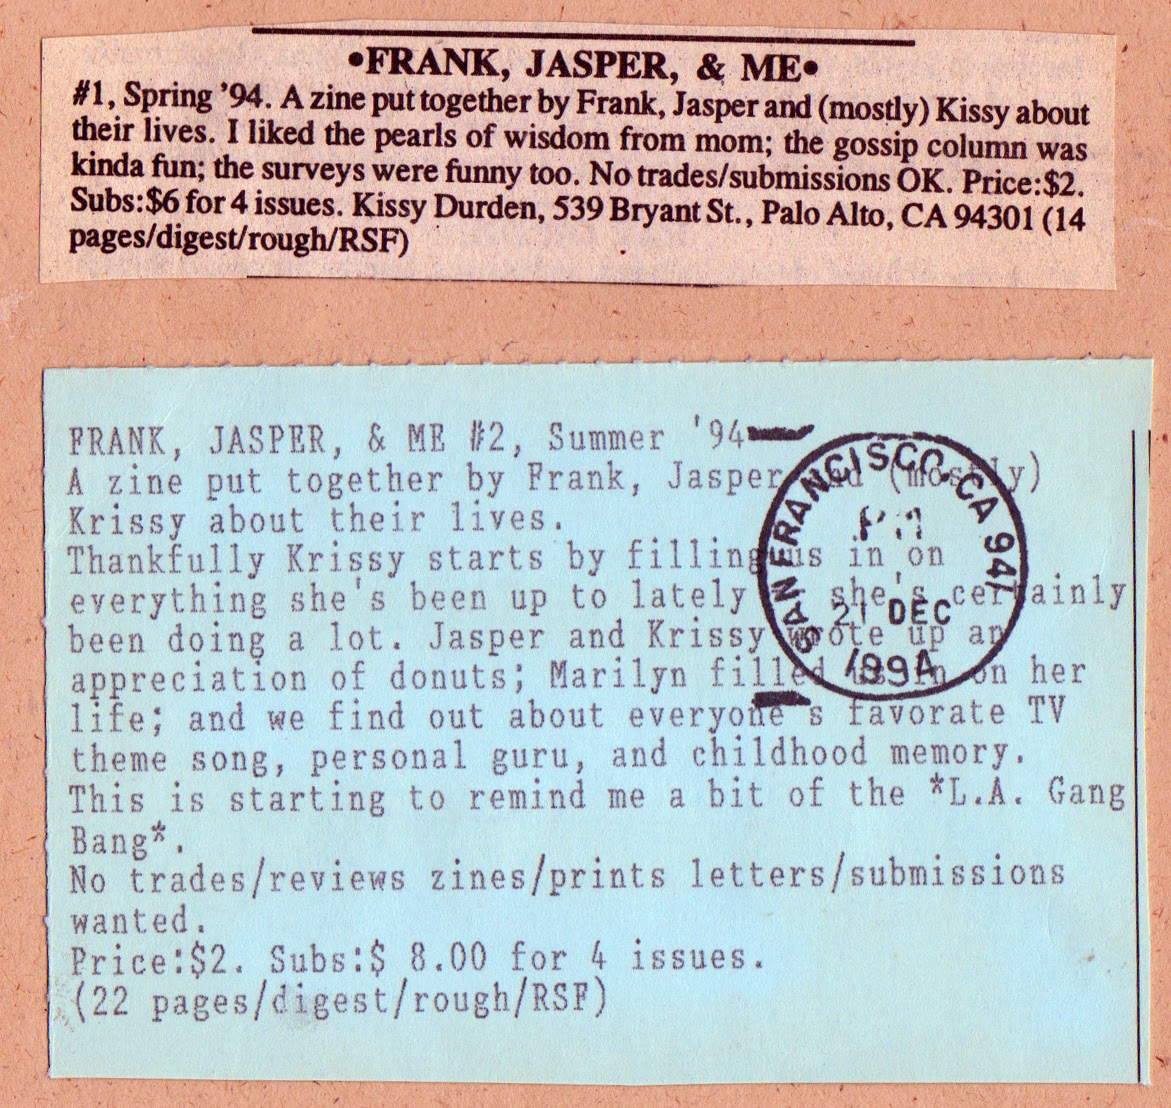 Factsheet Five reviews for Frank, Jasper and Me zine.